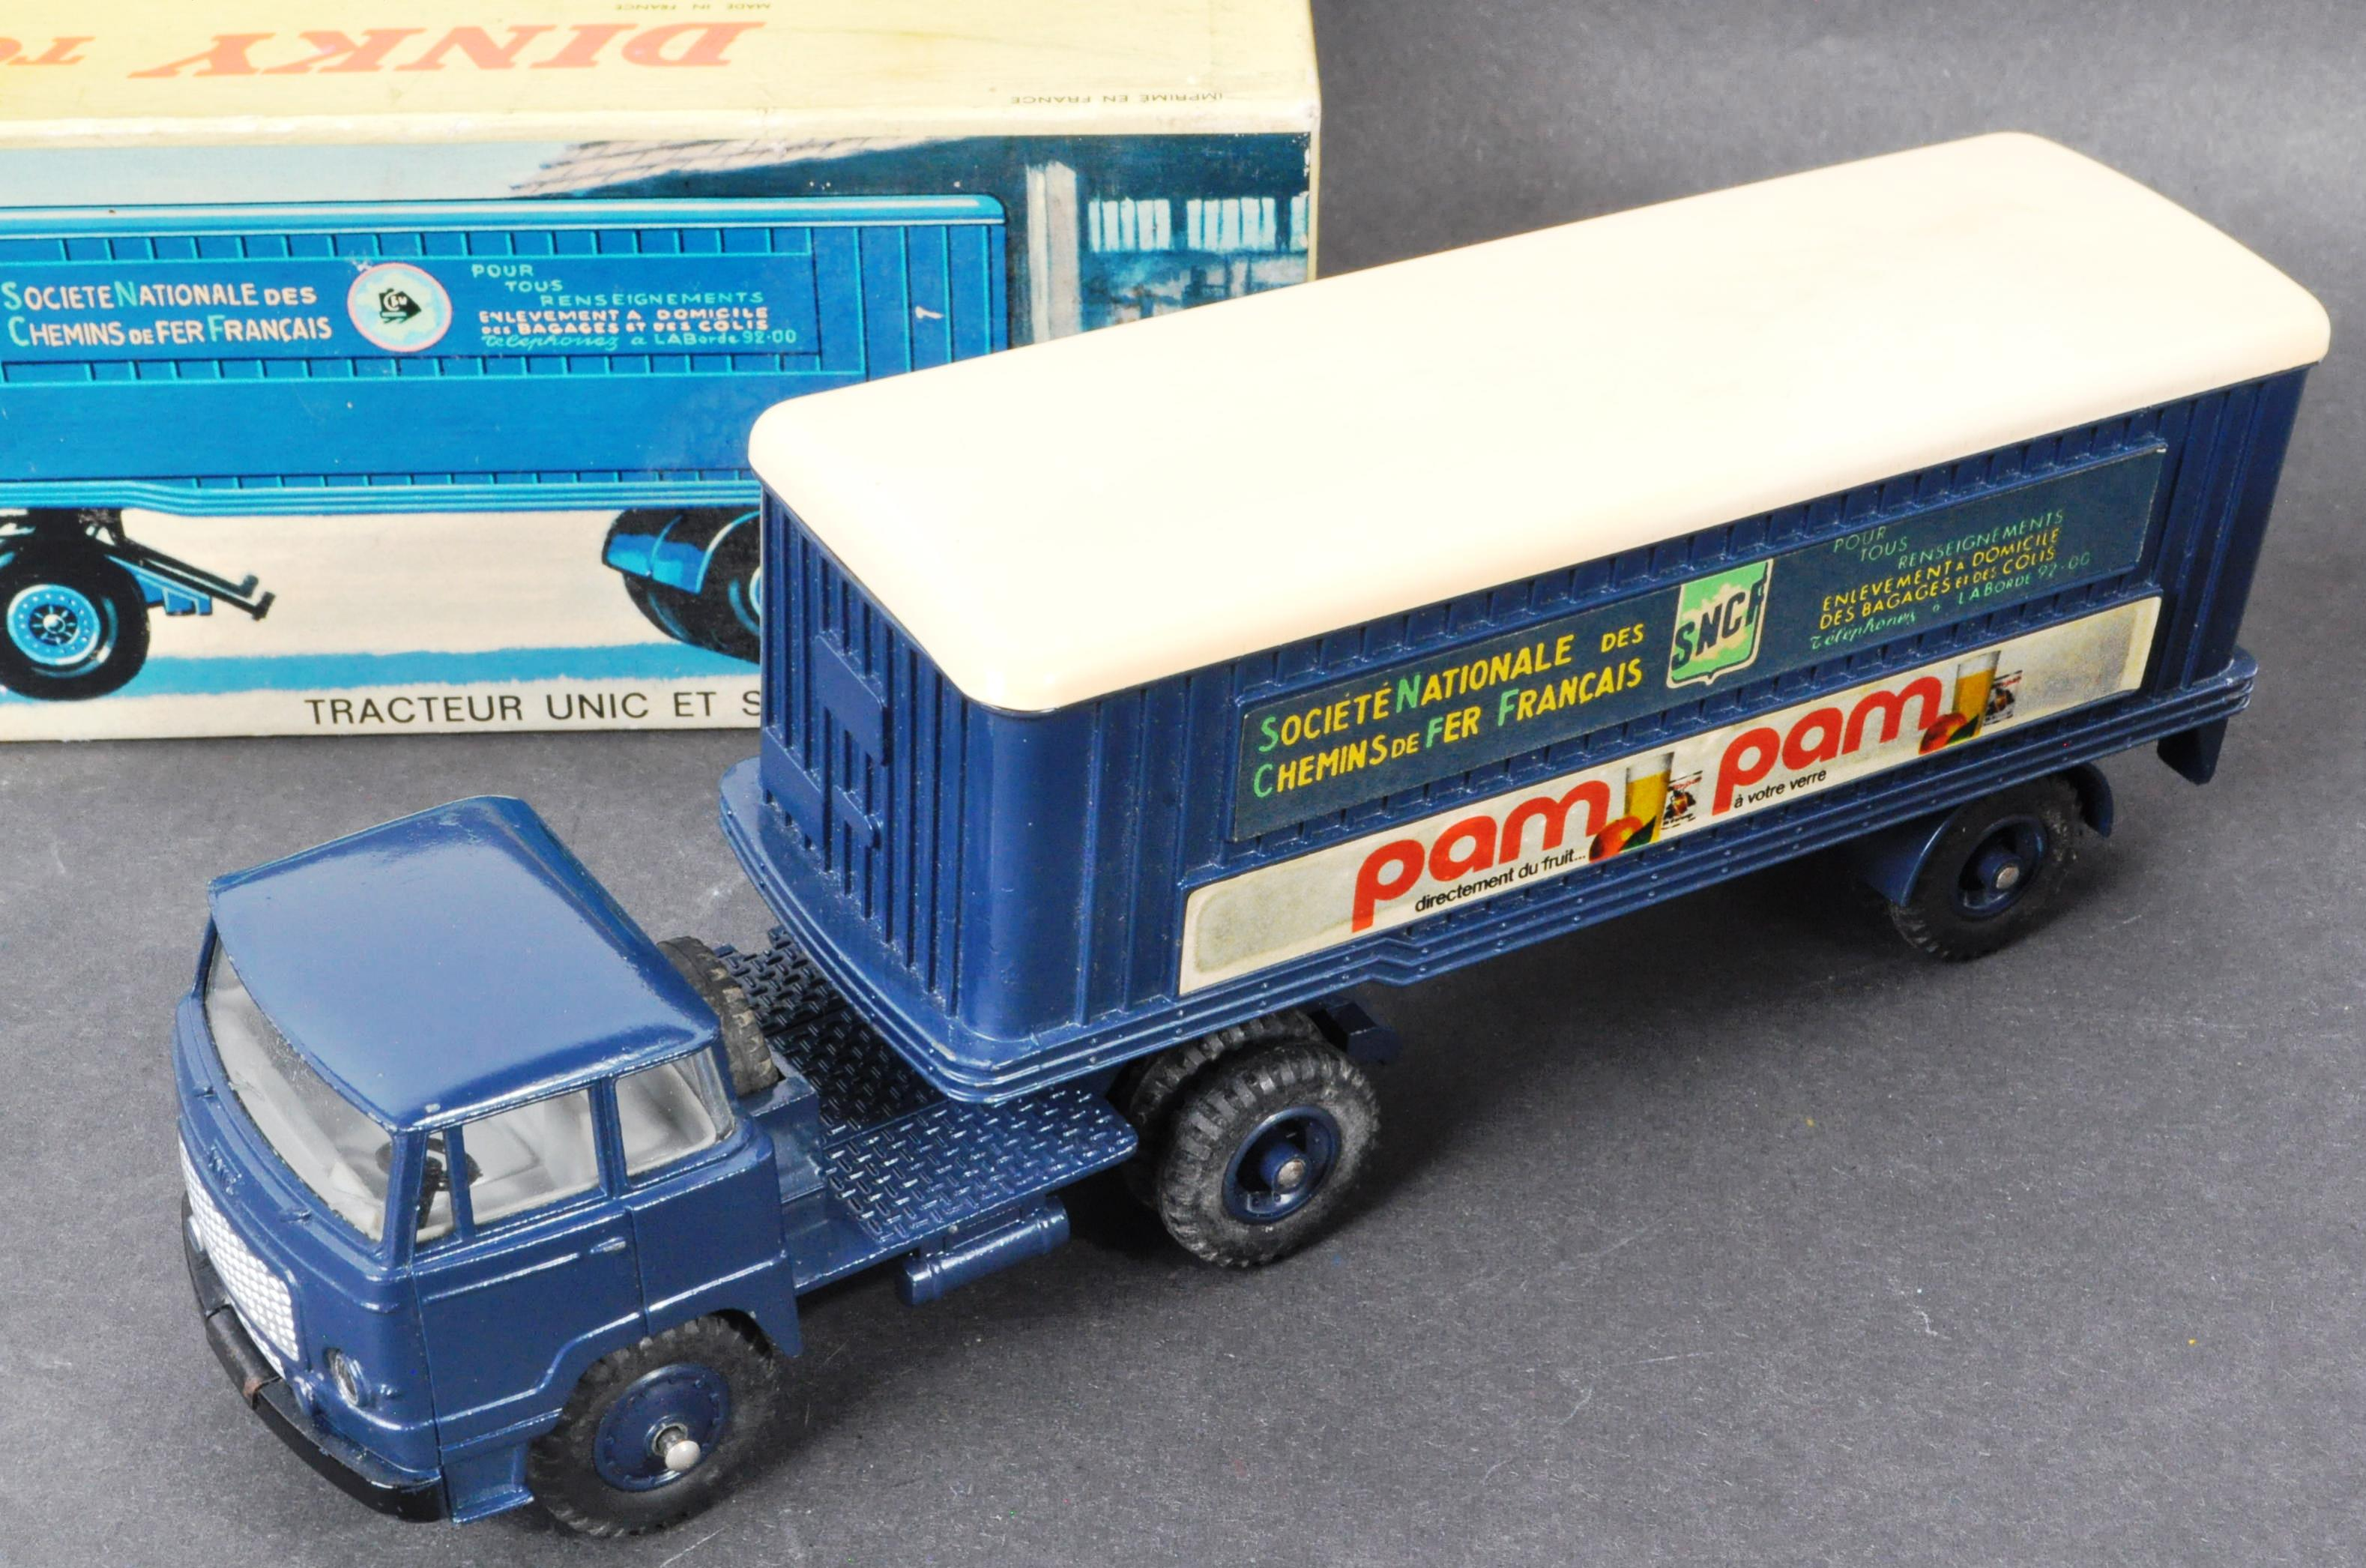 FRENCH DINKY TOYS - ORIGINAL BOXED VINTAGE DIECAST MODEL - Image 2 of 6